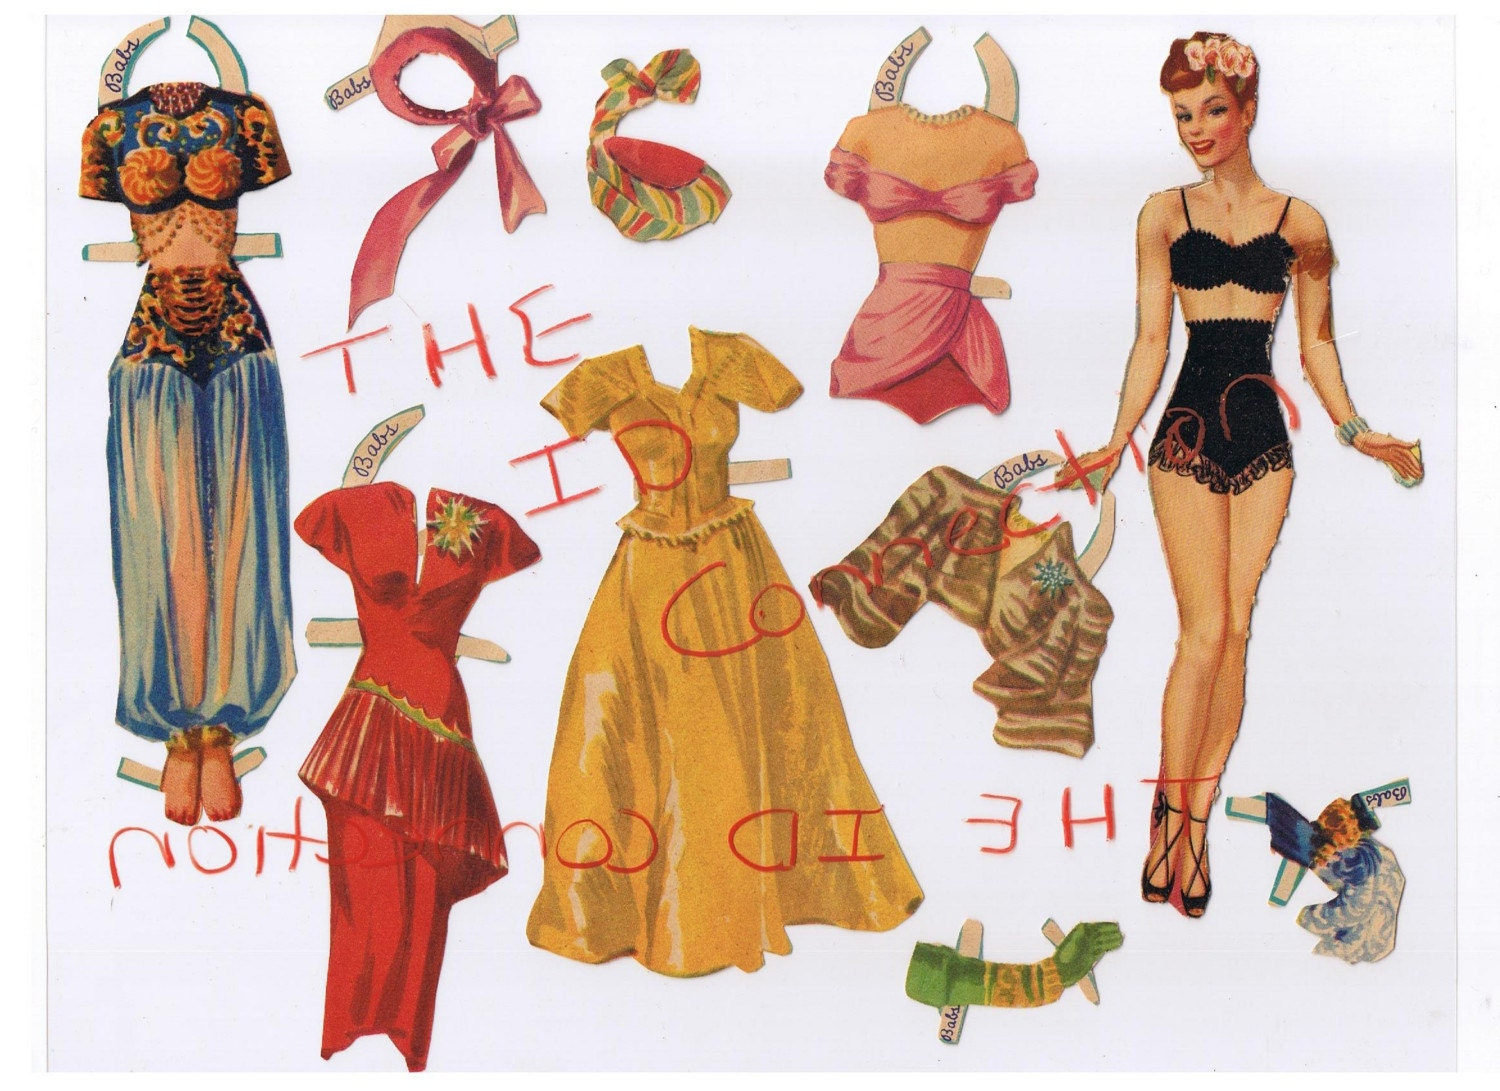 vintage paper dolls for sale Paper dolls remain a cut above by: chriss swaney said the growth of internet shopping has sparked more competitive bidding for rare, vintage paper dolls.